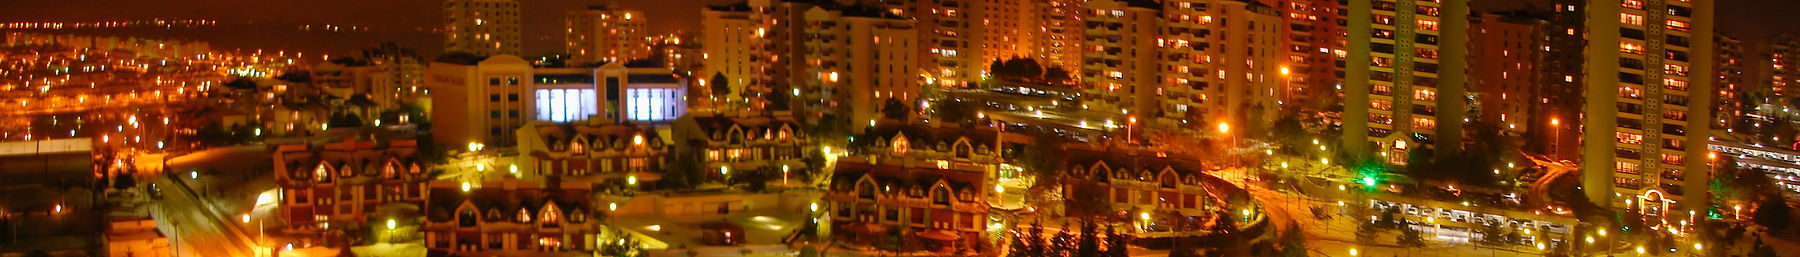 The suburb of Bahçeşehir at night